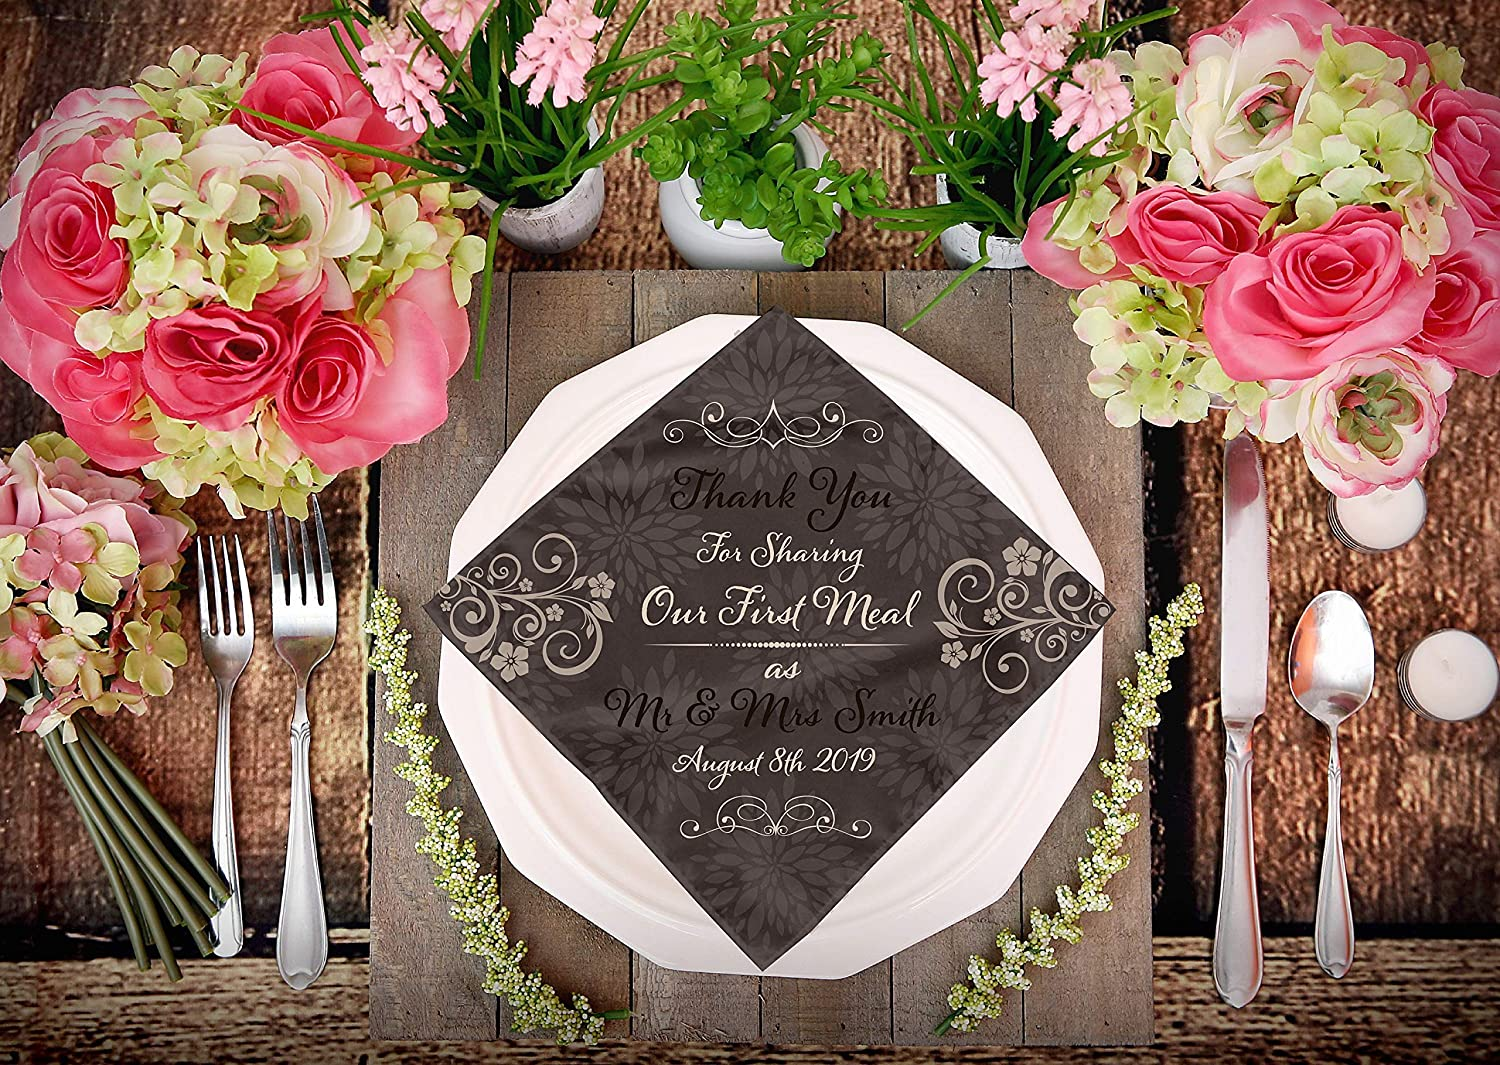 Mr//Mrs Napkins /& Mrs. Thank you for sharing our first meal as Mr Personalized Wedding Cloth Napkins Thank you Napkins 10 Dinner Napkins